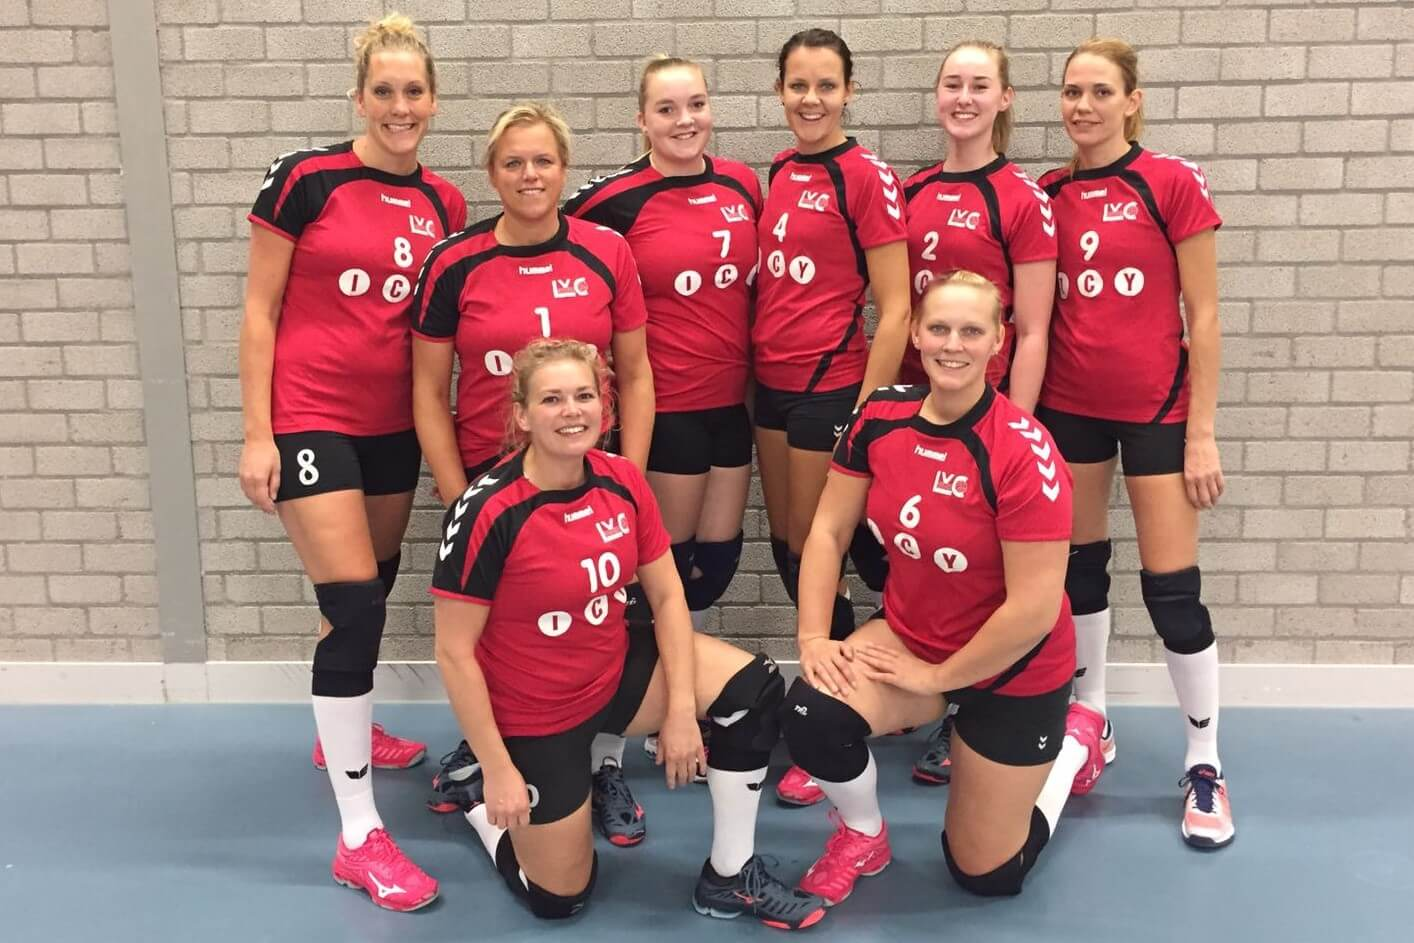 Teamfoto Dames 1 2018-2019